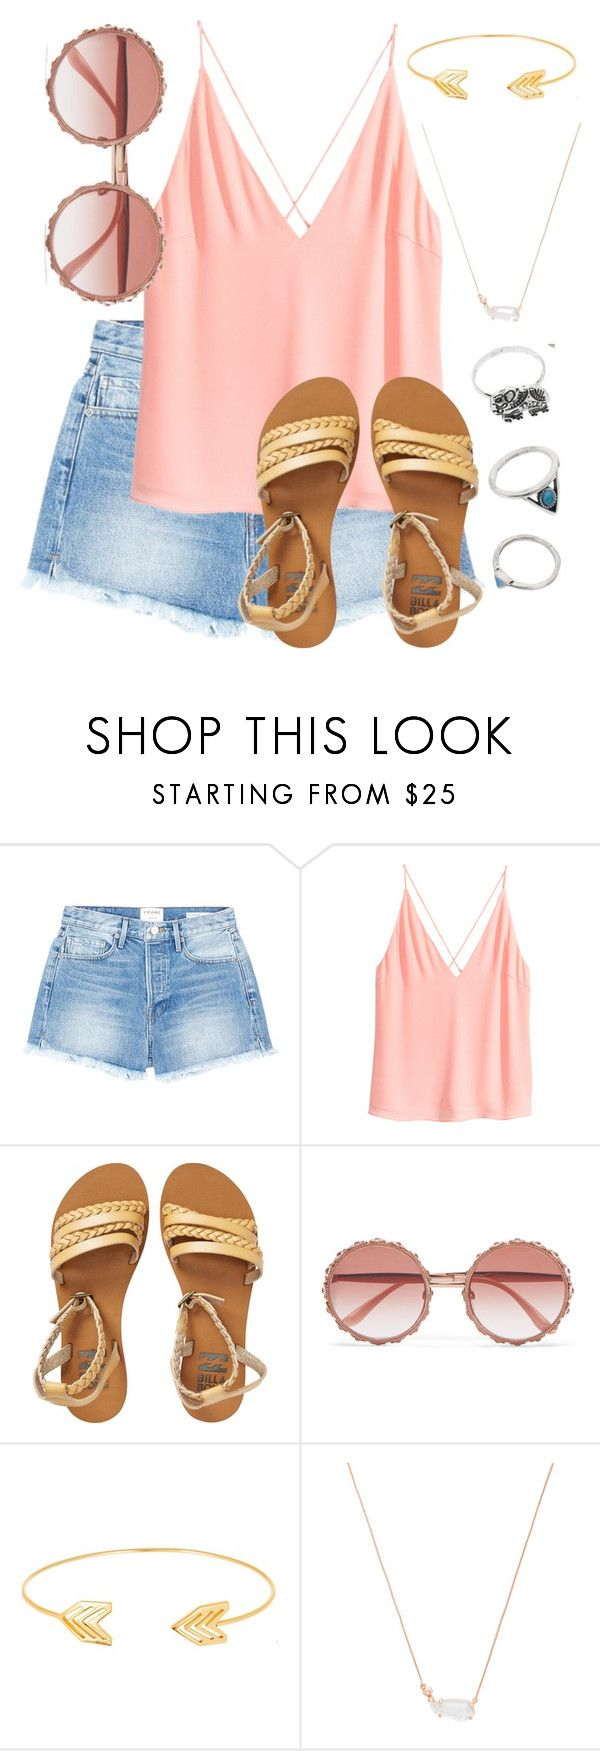 """What Should I Wear Today?"" by madisoncorell ❤ liked on Polyvore featuring Frame, Billabong, Dolce&Gabbana, Lord & Taylor and Kendra Scott"